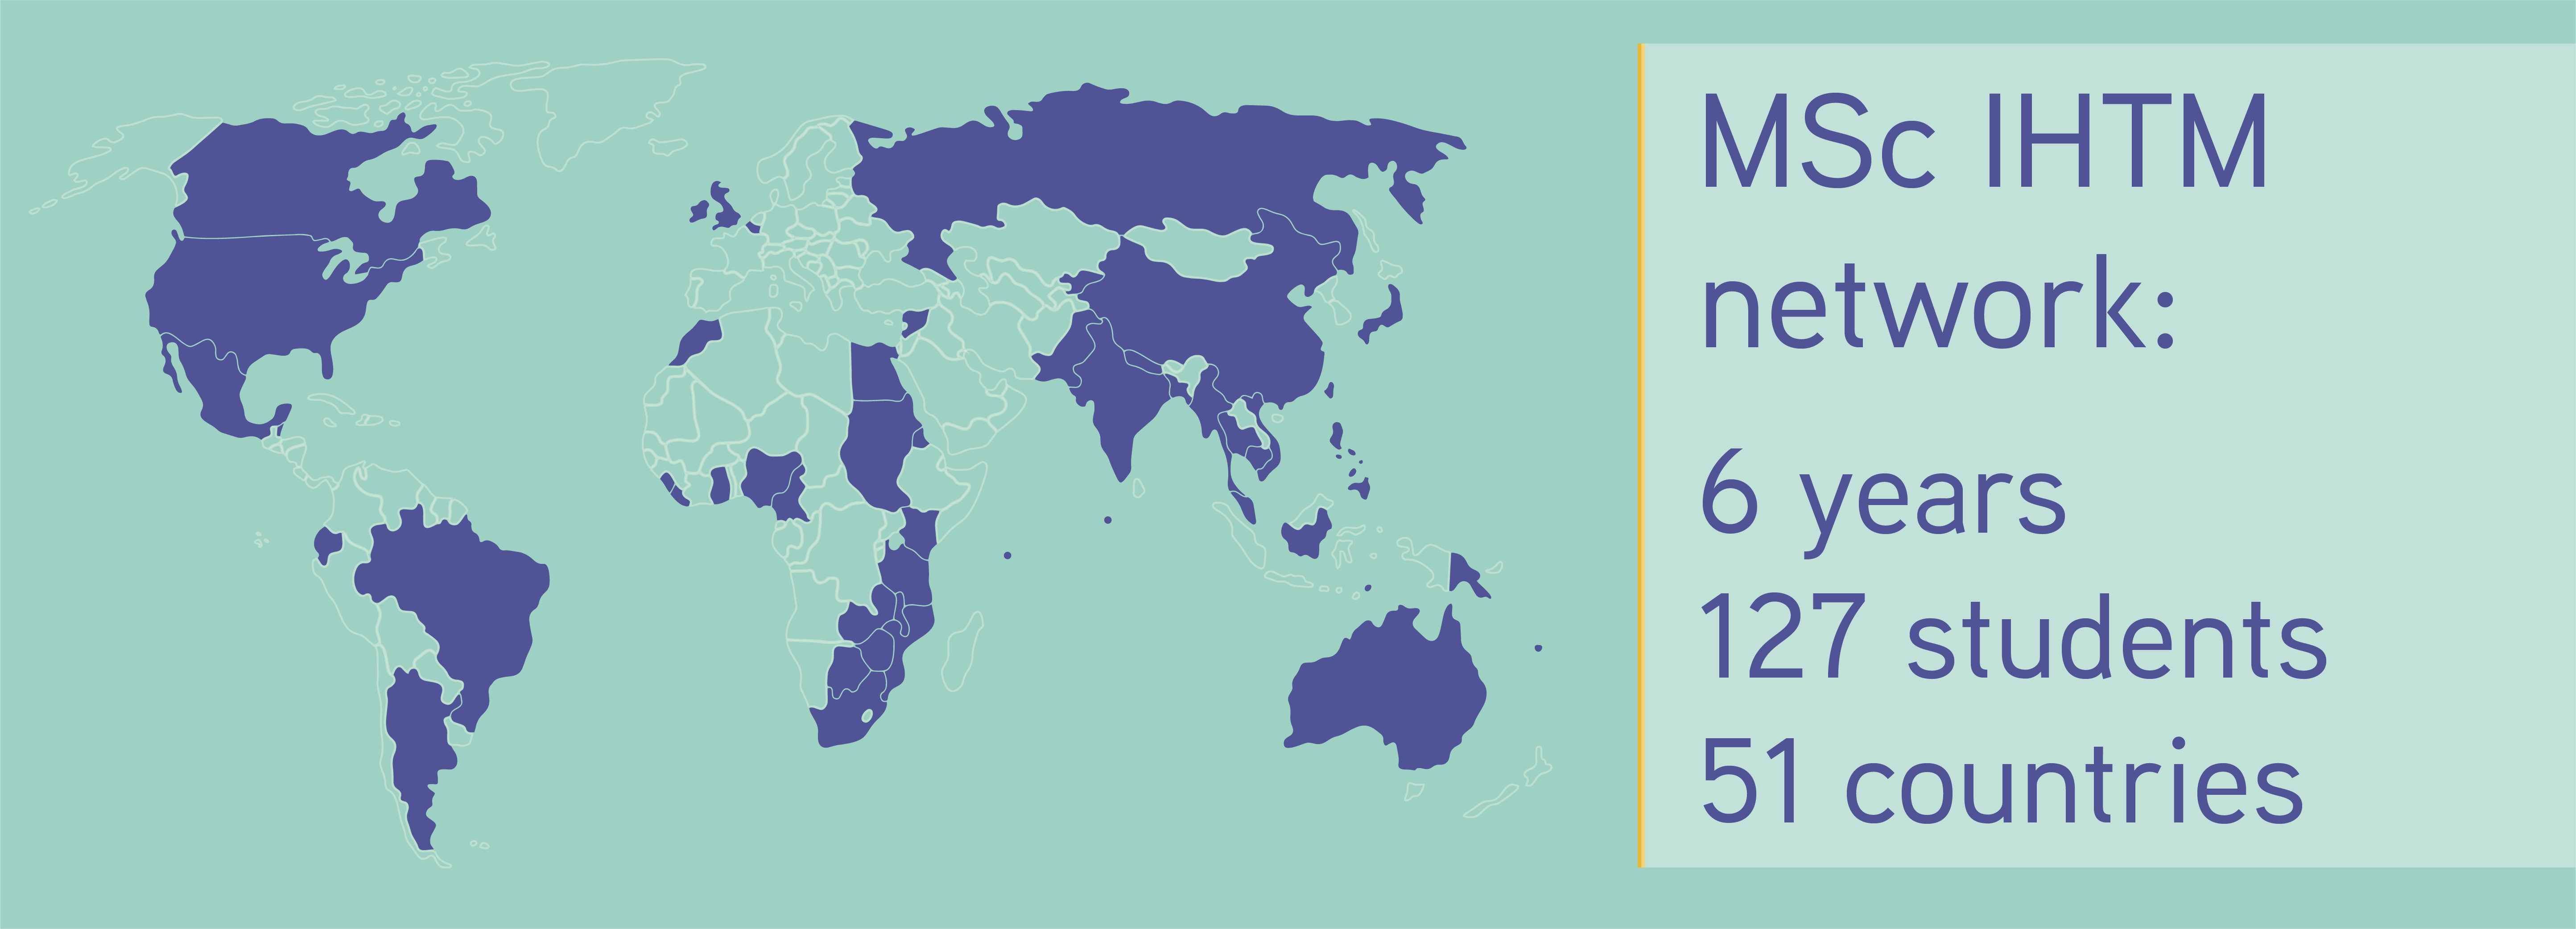 geographical map with the following information: MSc IHTM network: 6 years, 127 students from 51 countries